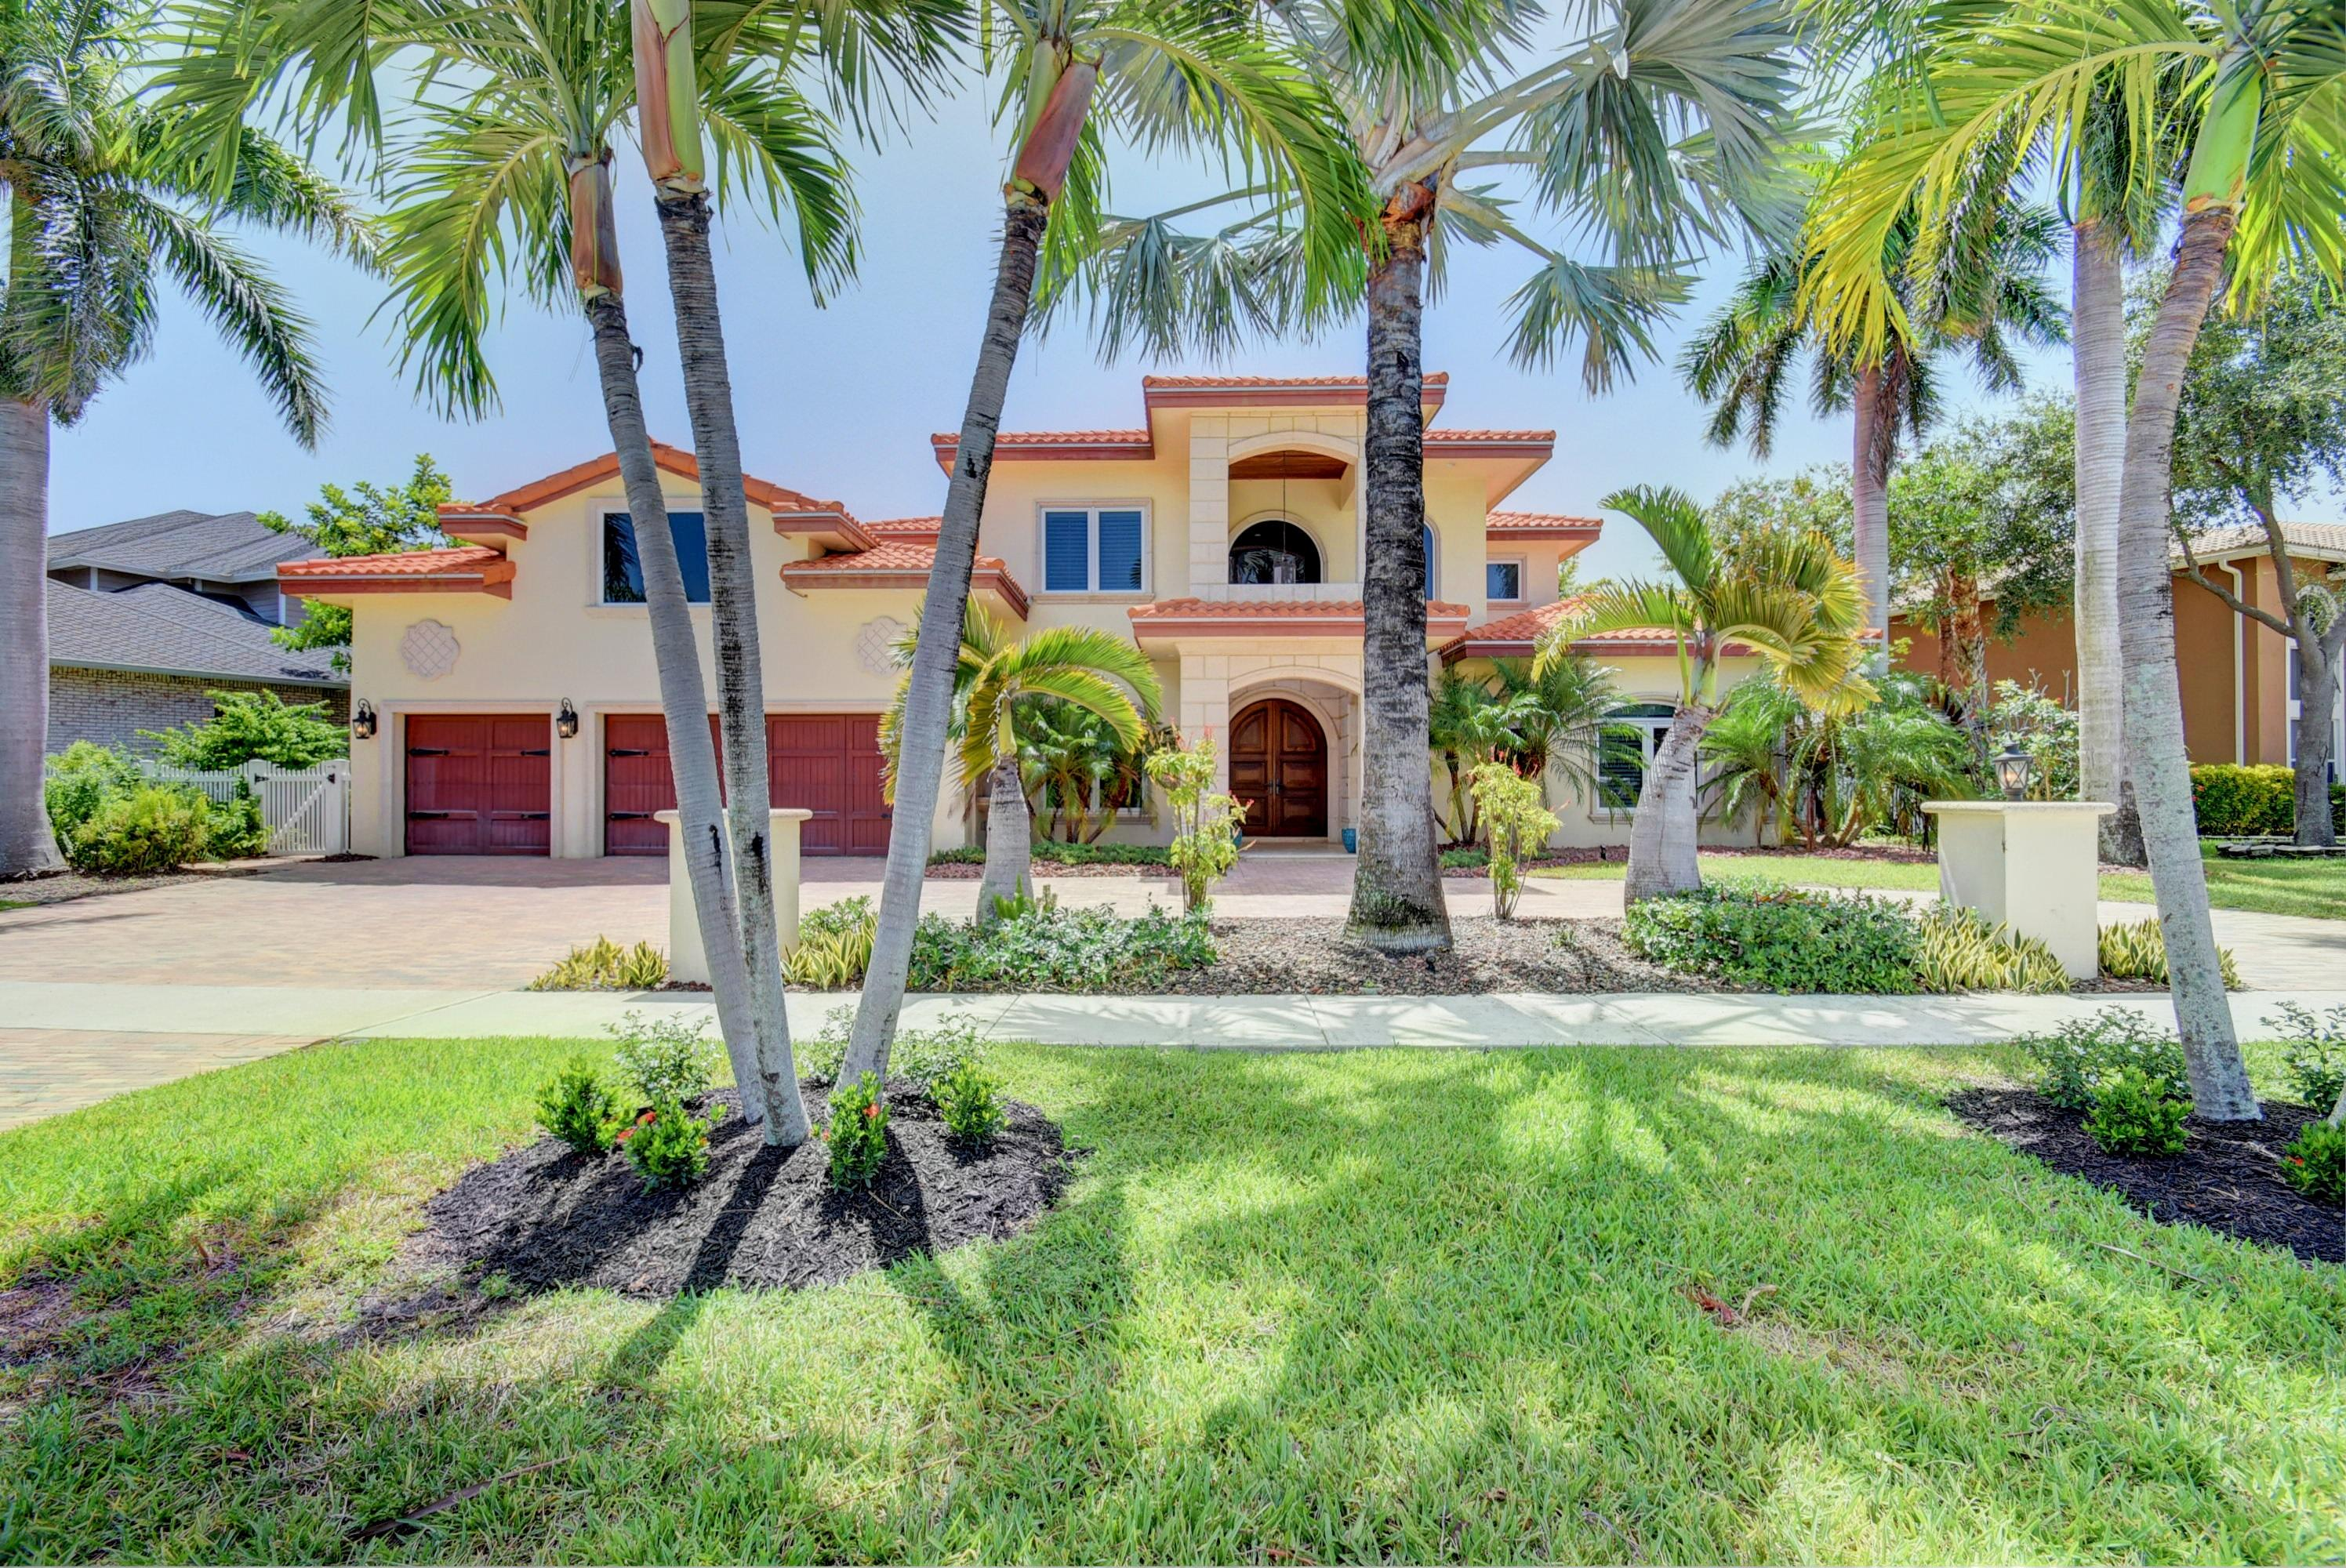 Home for sale in Hidden Valley Boca Raton Florida